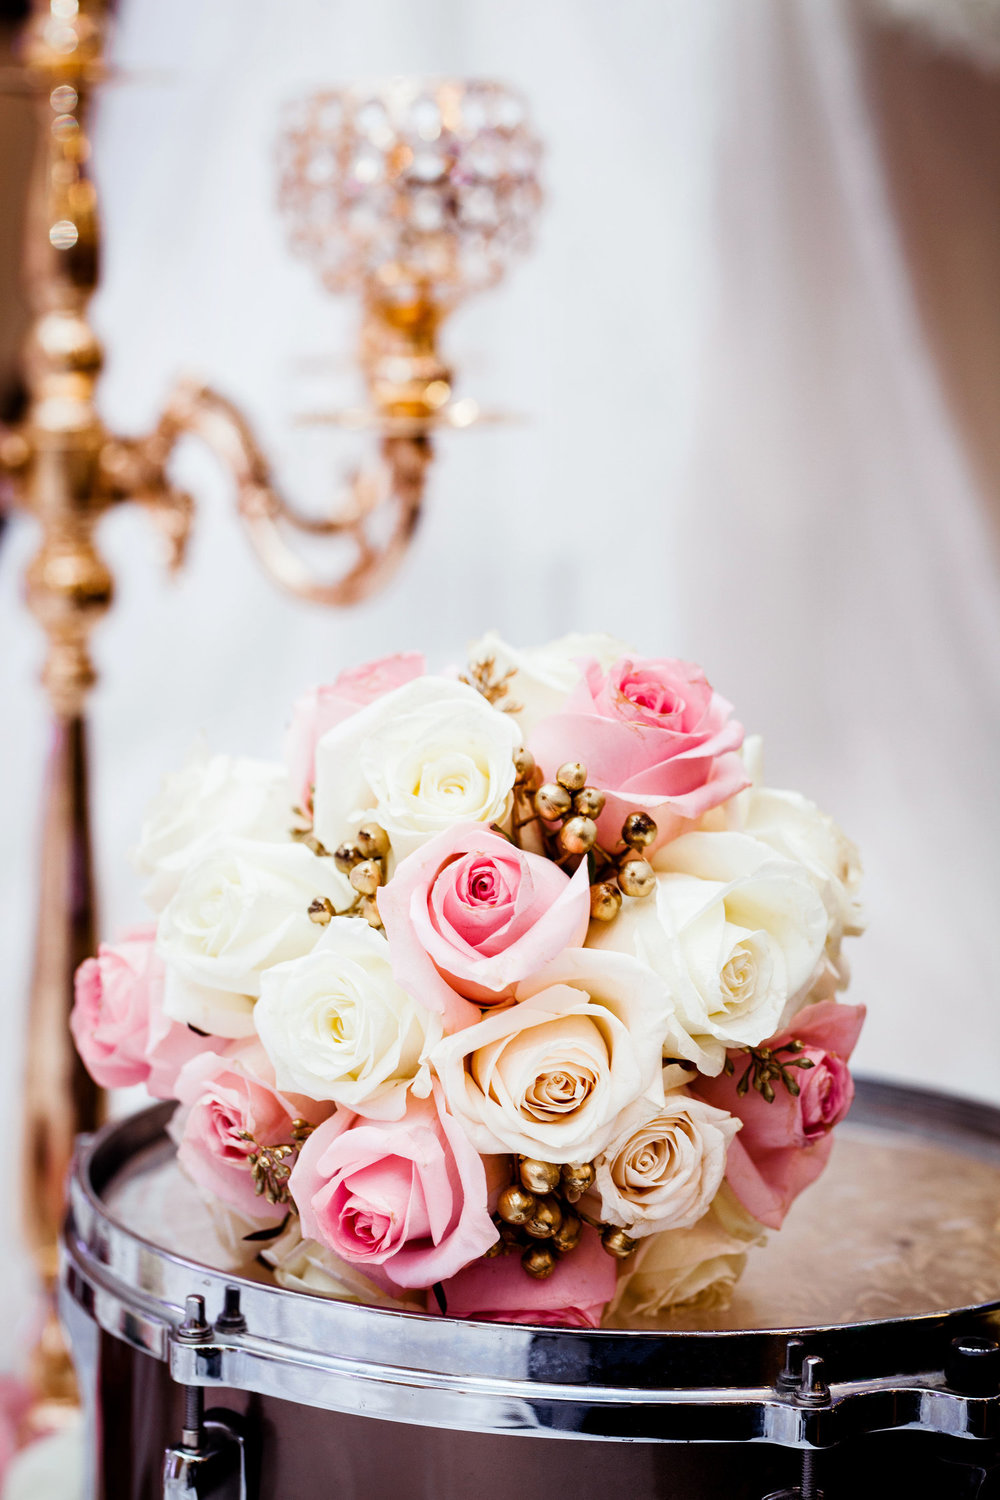 Somali Wedding Toronto Details Muslim Ethiopian Eritrean Tanzanian Toronto Ontario Royal King Banquet Hall Munaluchi Bride Egyptian Henna Black Henna Bride Cultural Islamic Babylon Decor Karimah Gheddai Photography Zuhoor Designs bouquet Florals Roses Pink and Gold